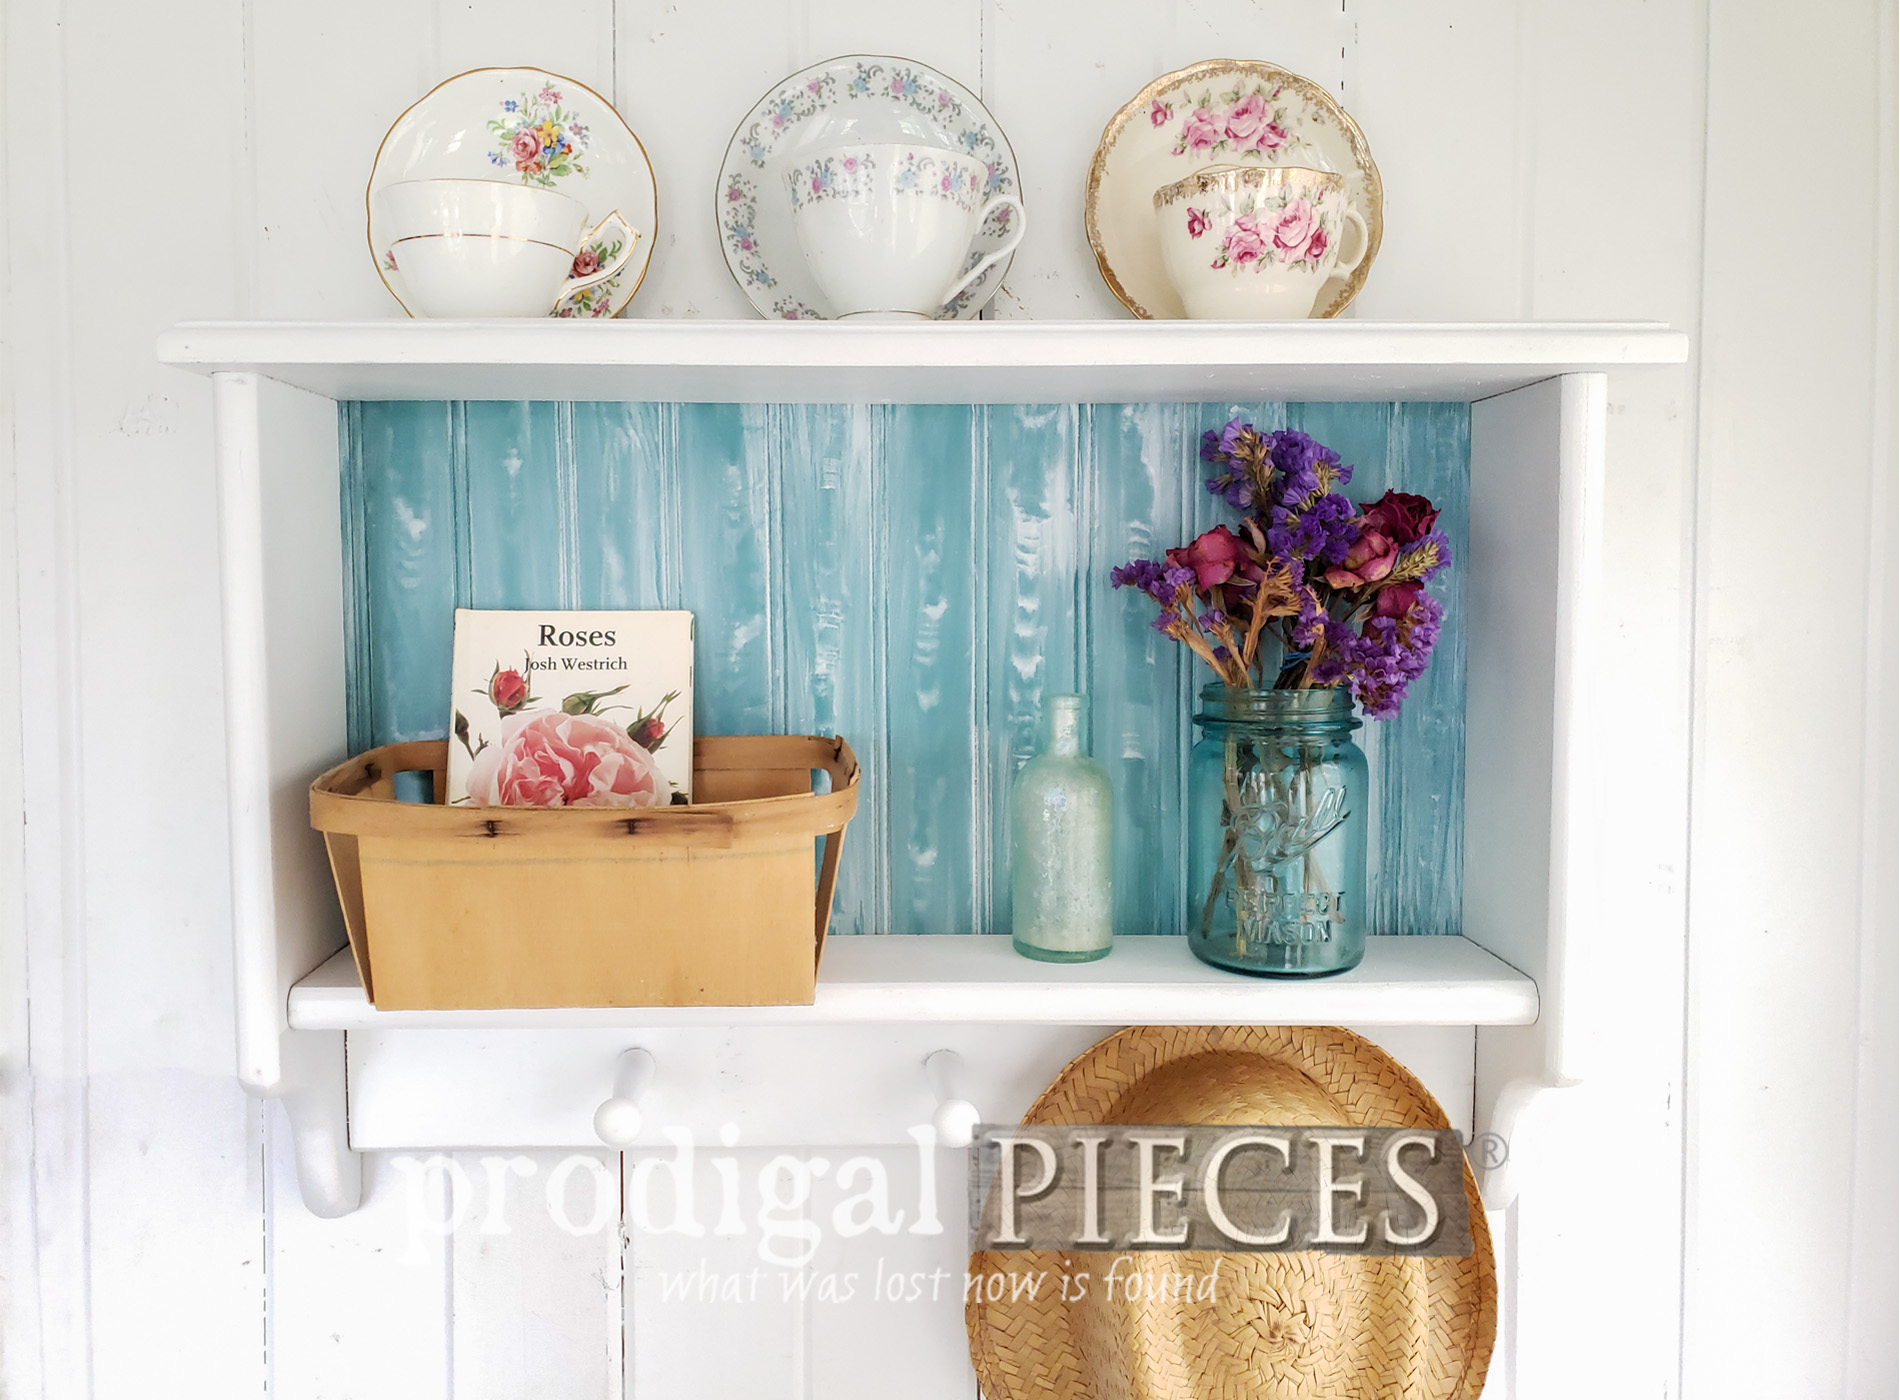 Featured Cottage Style Home Decor Shelf with Coat Towel Rack by Larissa of Prodigal Pieces | prodigalpieces.com #prodigalpieces #handmade #home #cottagestyle #diy #homedecor #vintage